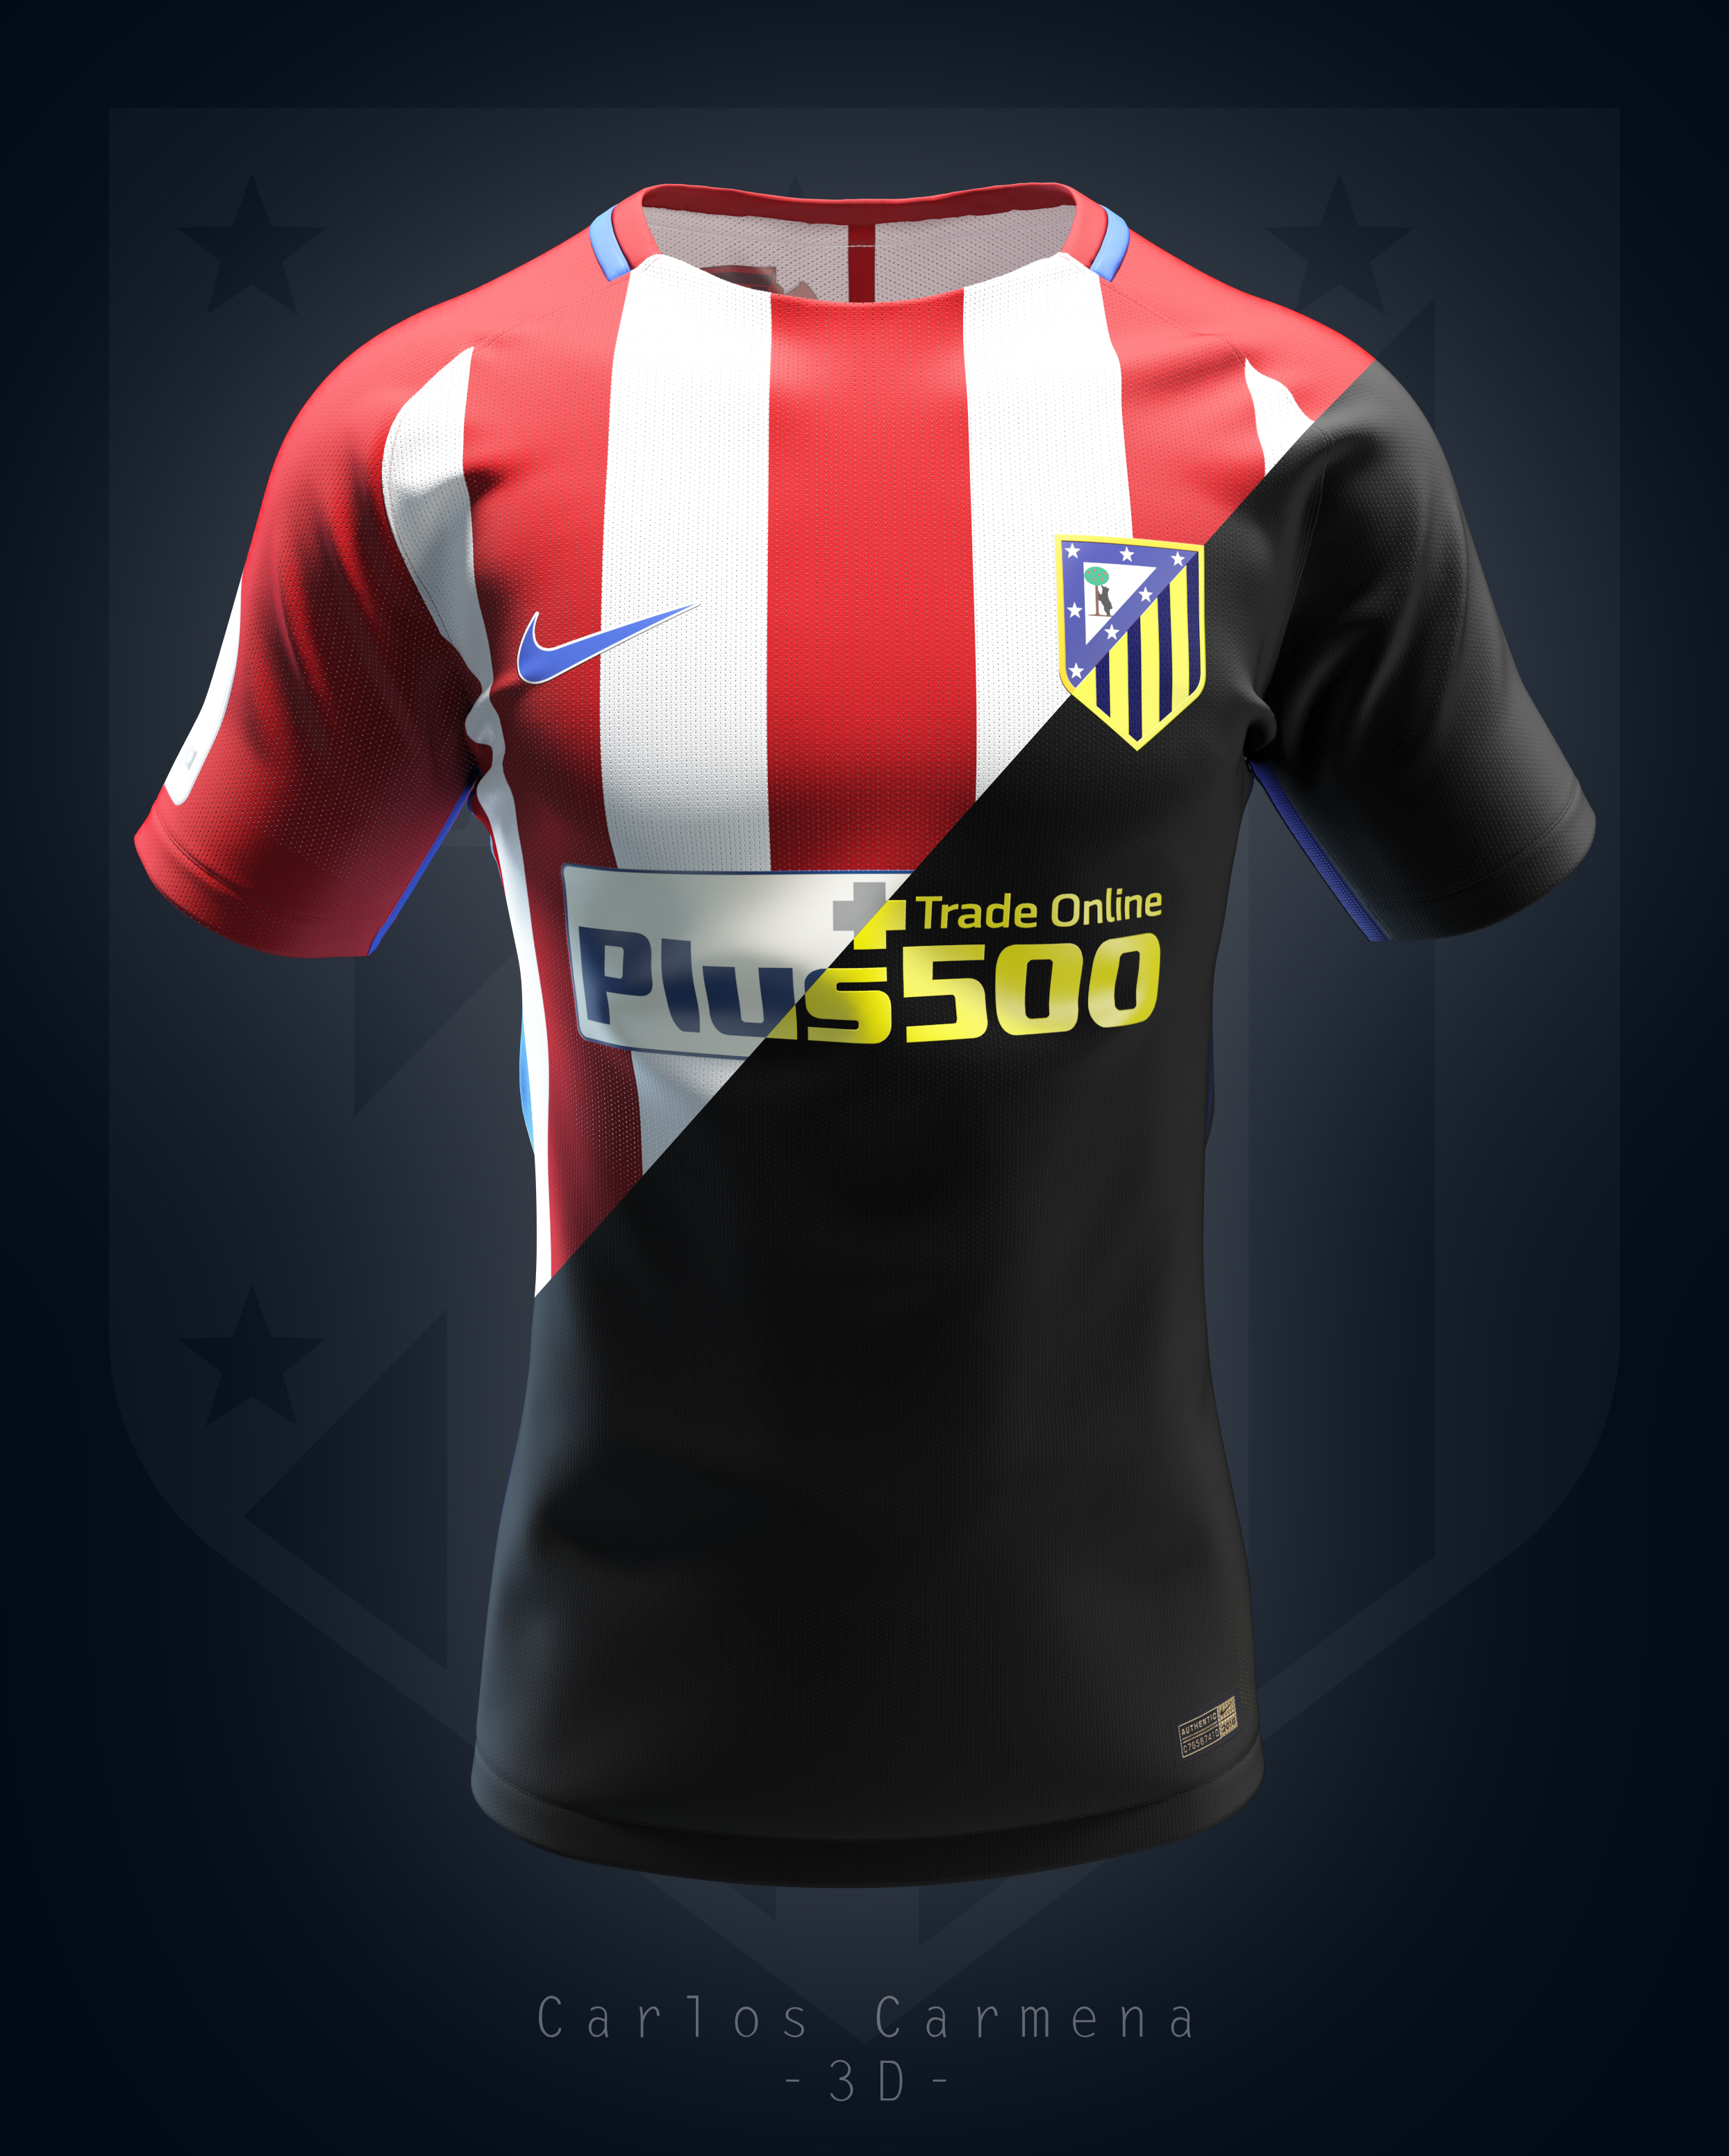 Atlético de Madrid shirt